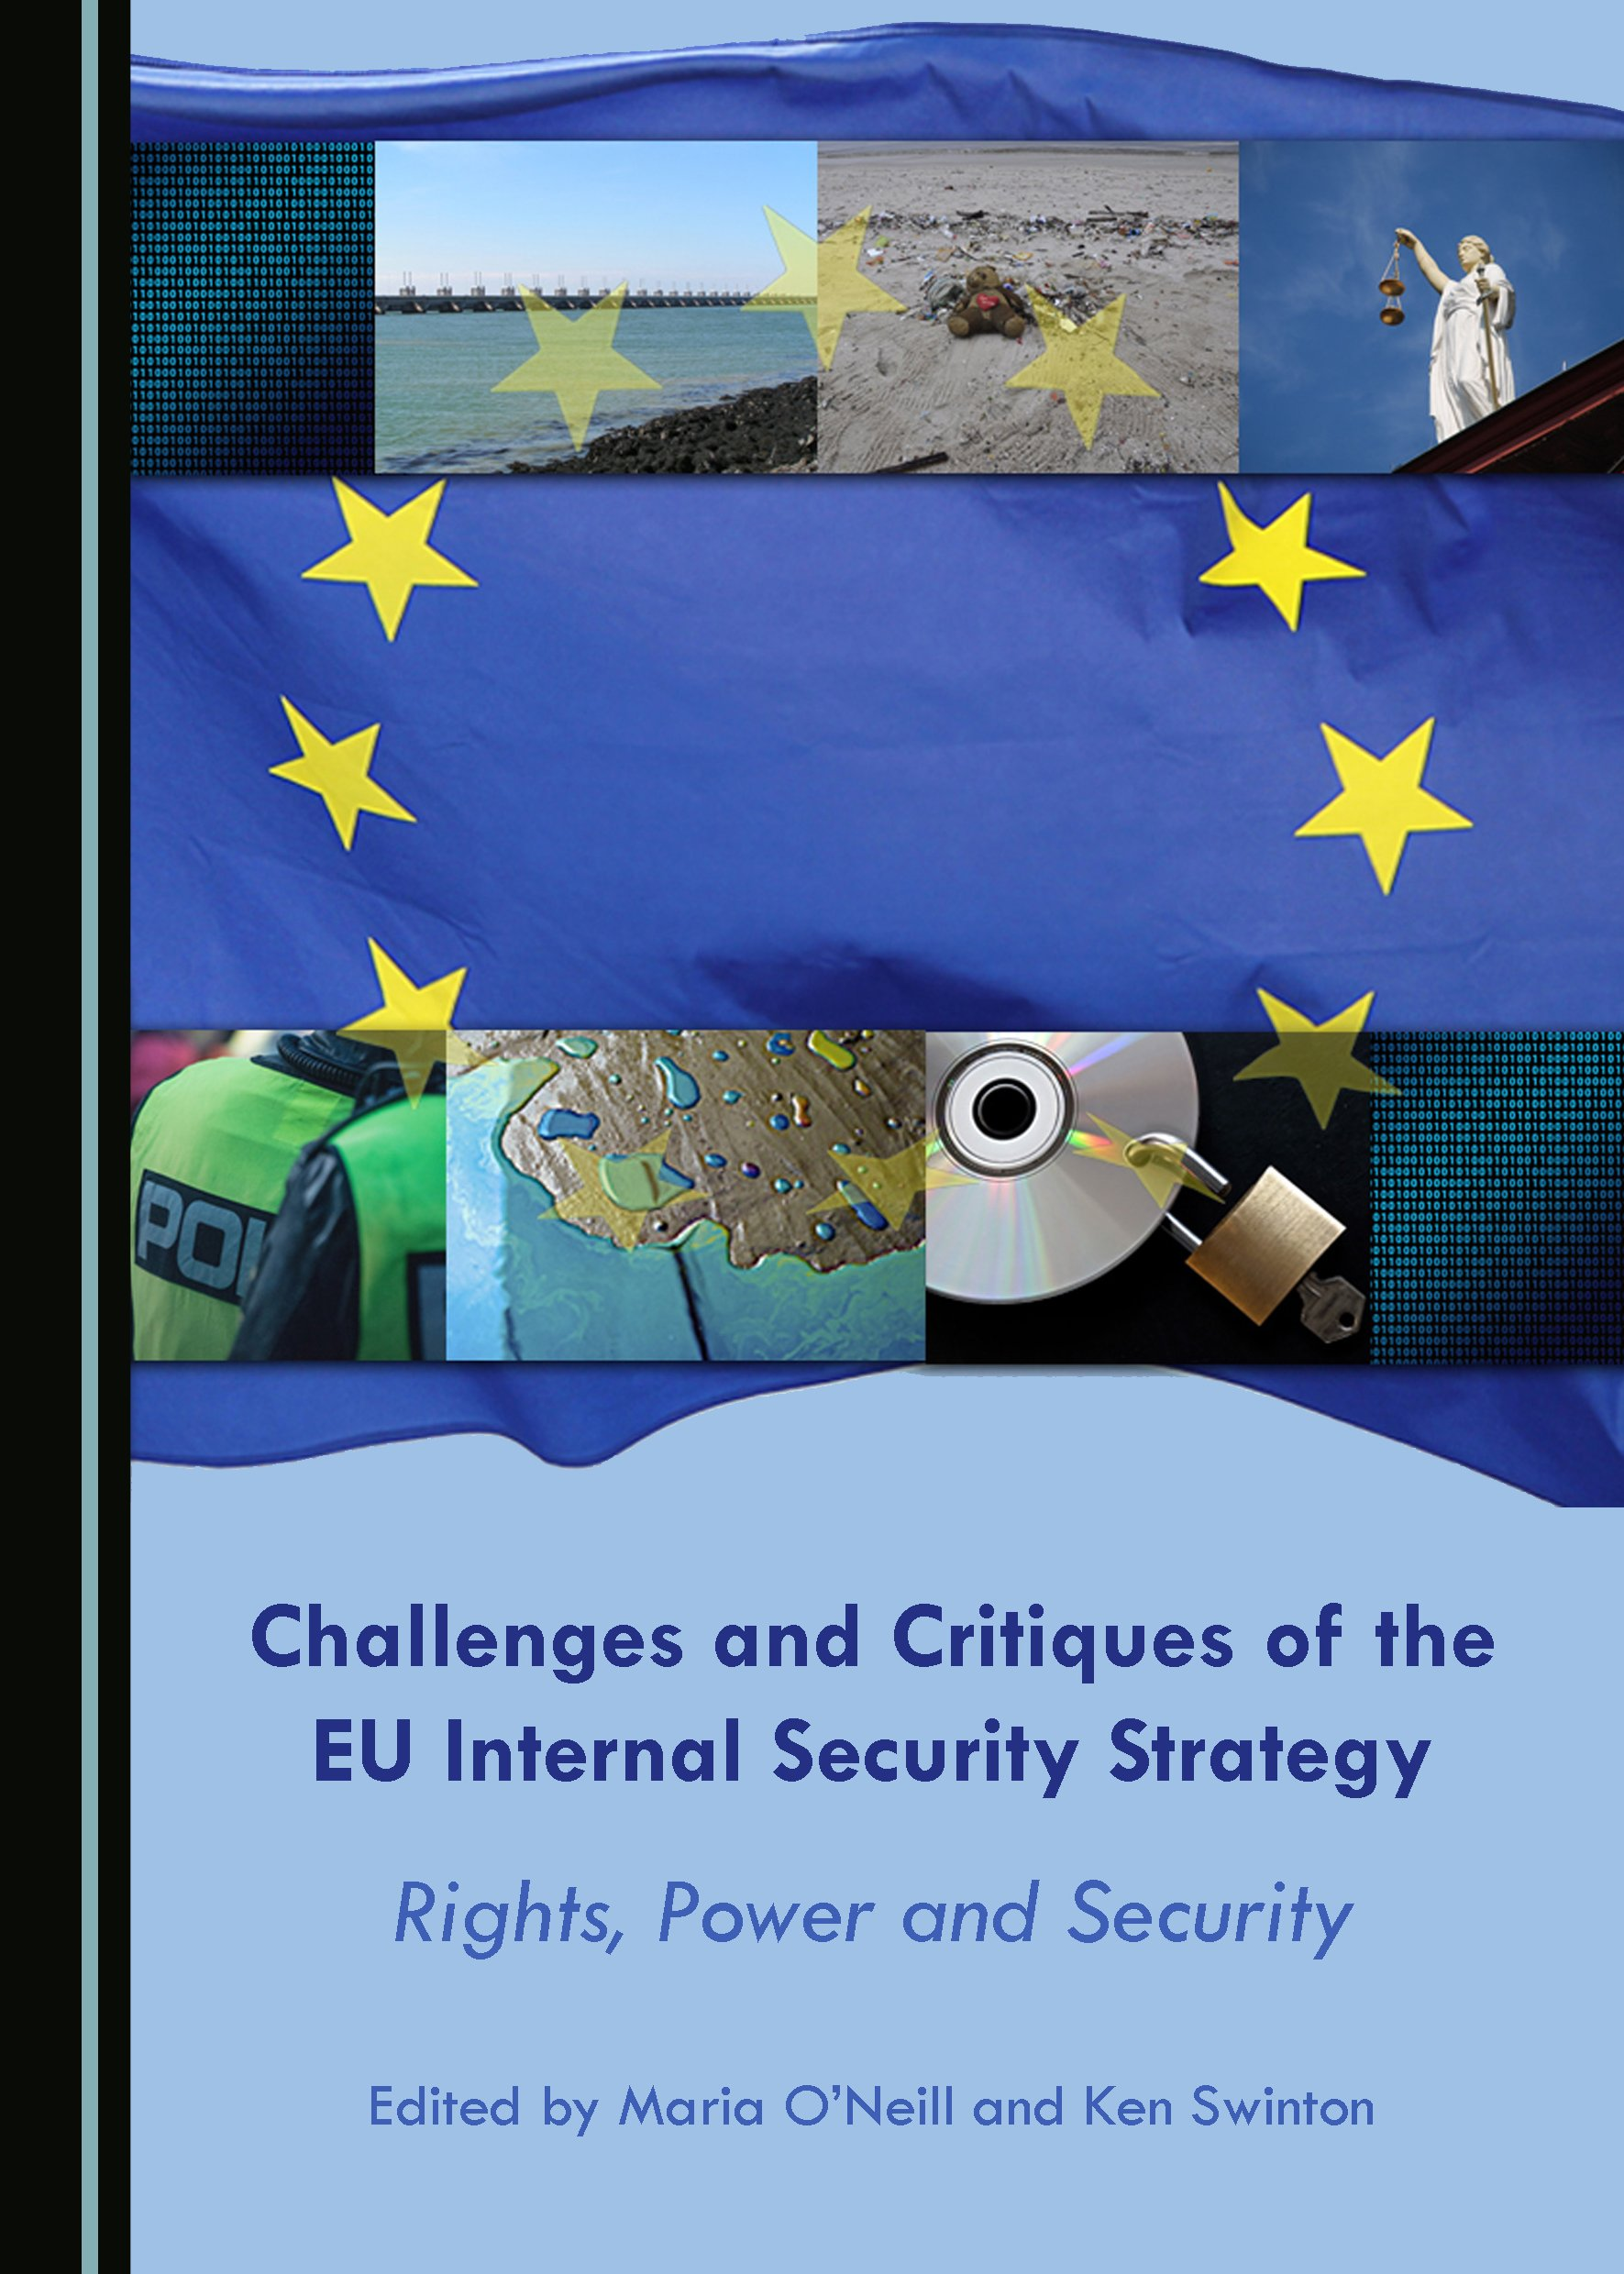 Challenges and Critiques of the EU Internal Security Strategy: Rights, Power and Security